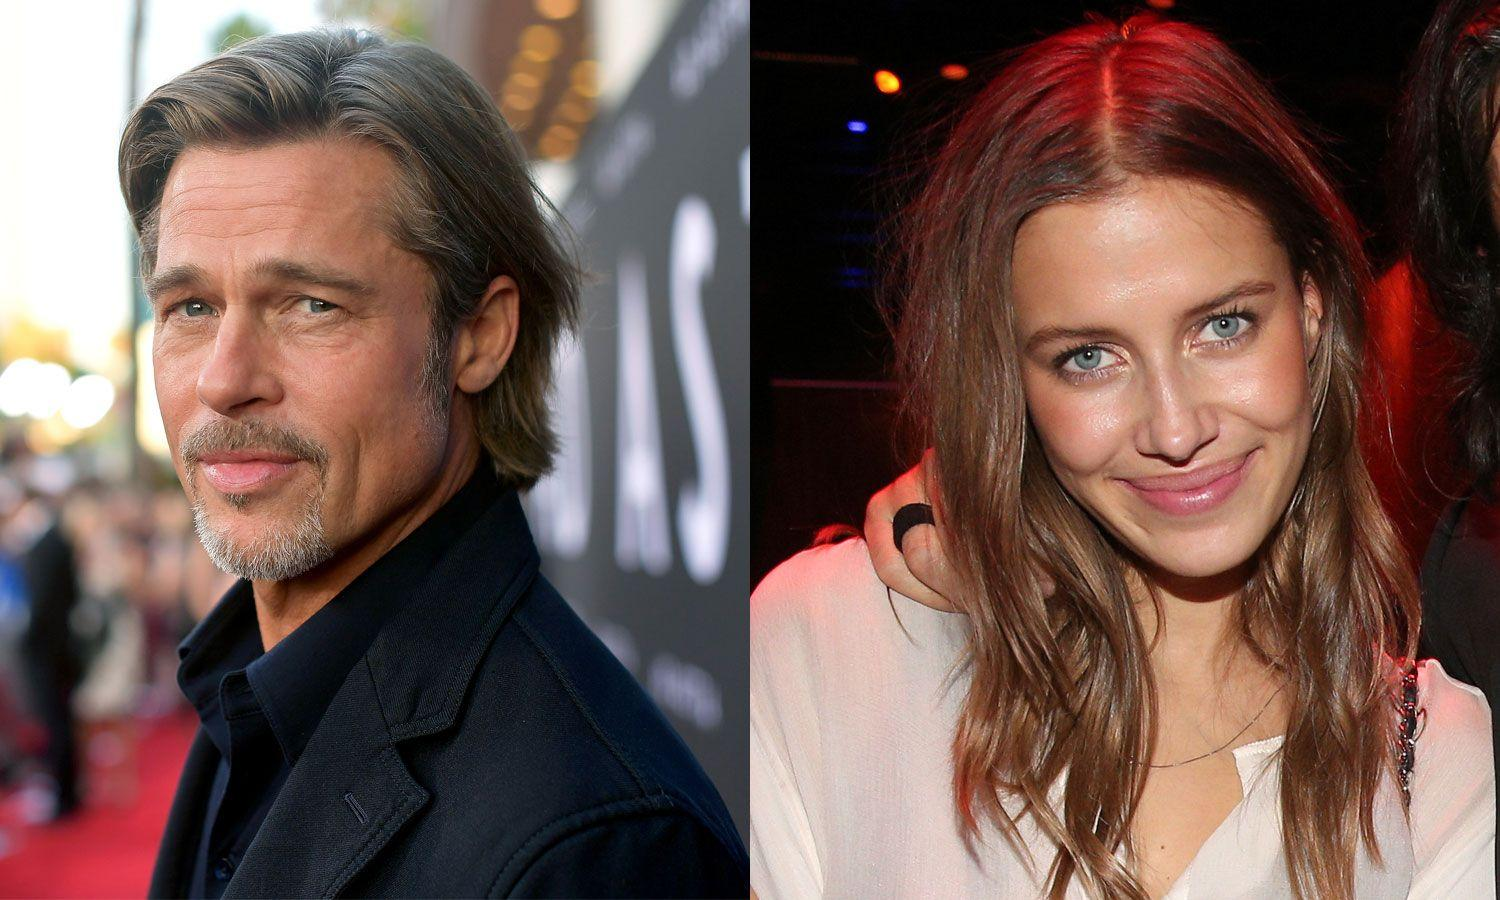 Brad Pitt's Girlfriend Nicole Poturalski Accused Of Hating His Ex Angelina Jolie - Check Out Her Response!